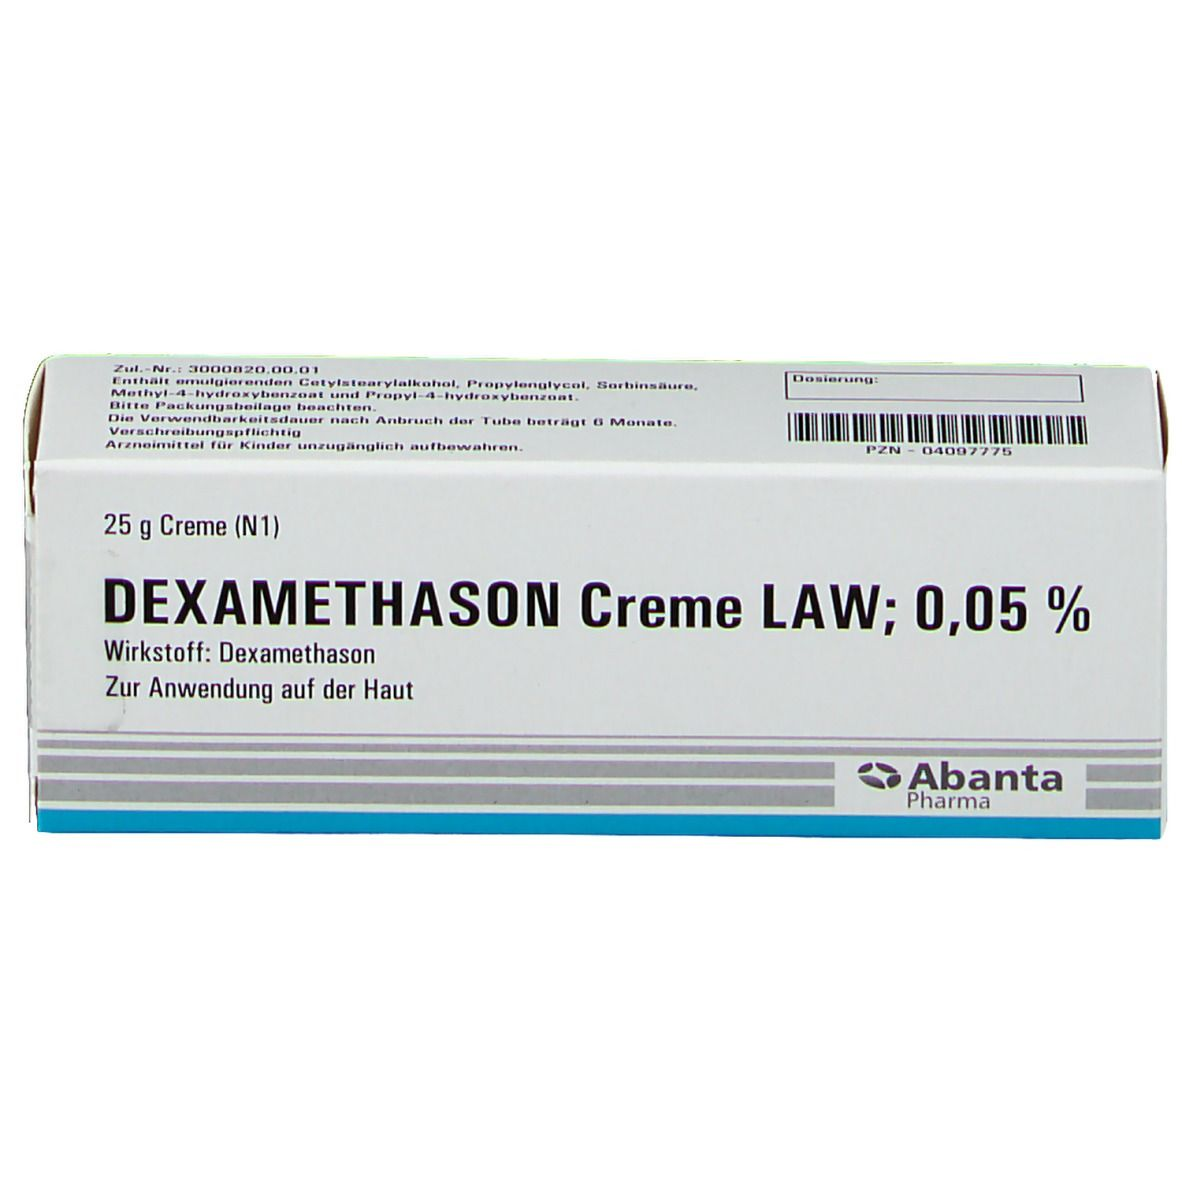 Dexamethason Creme Law